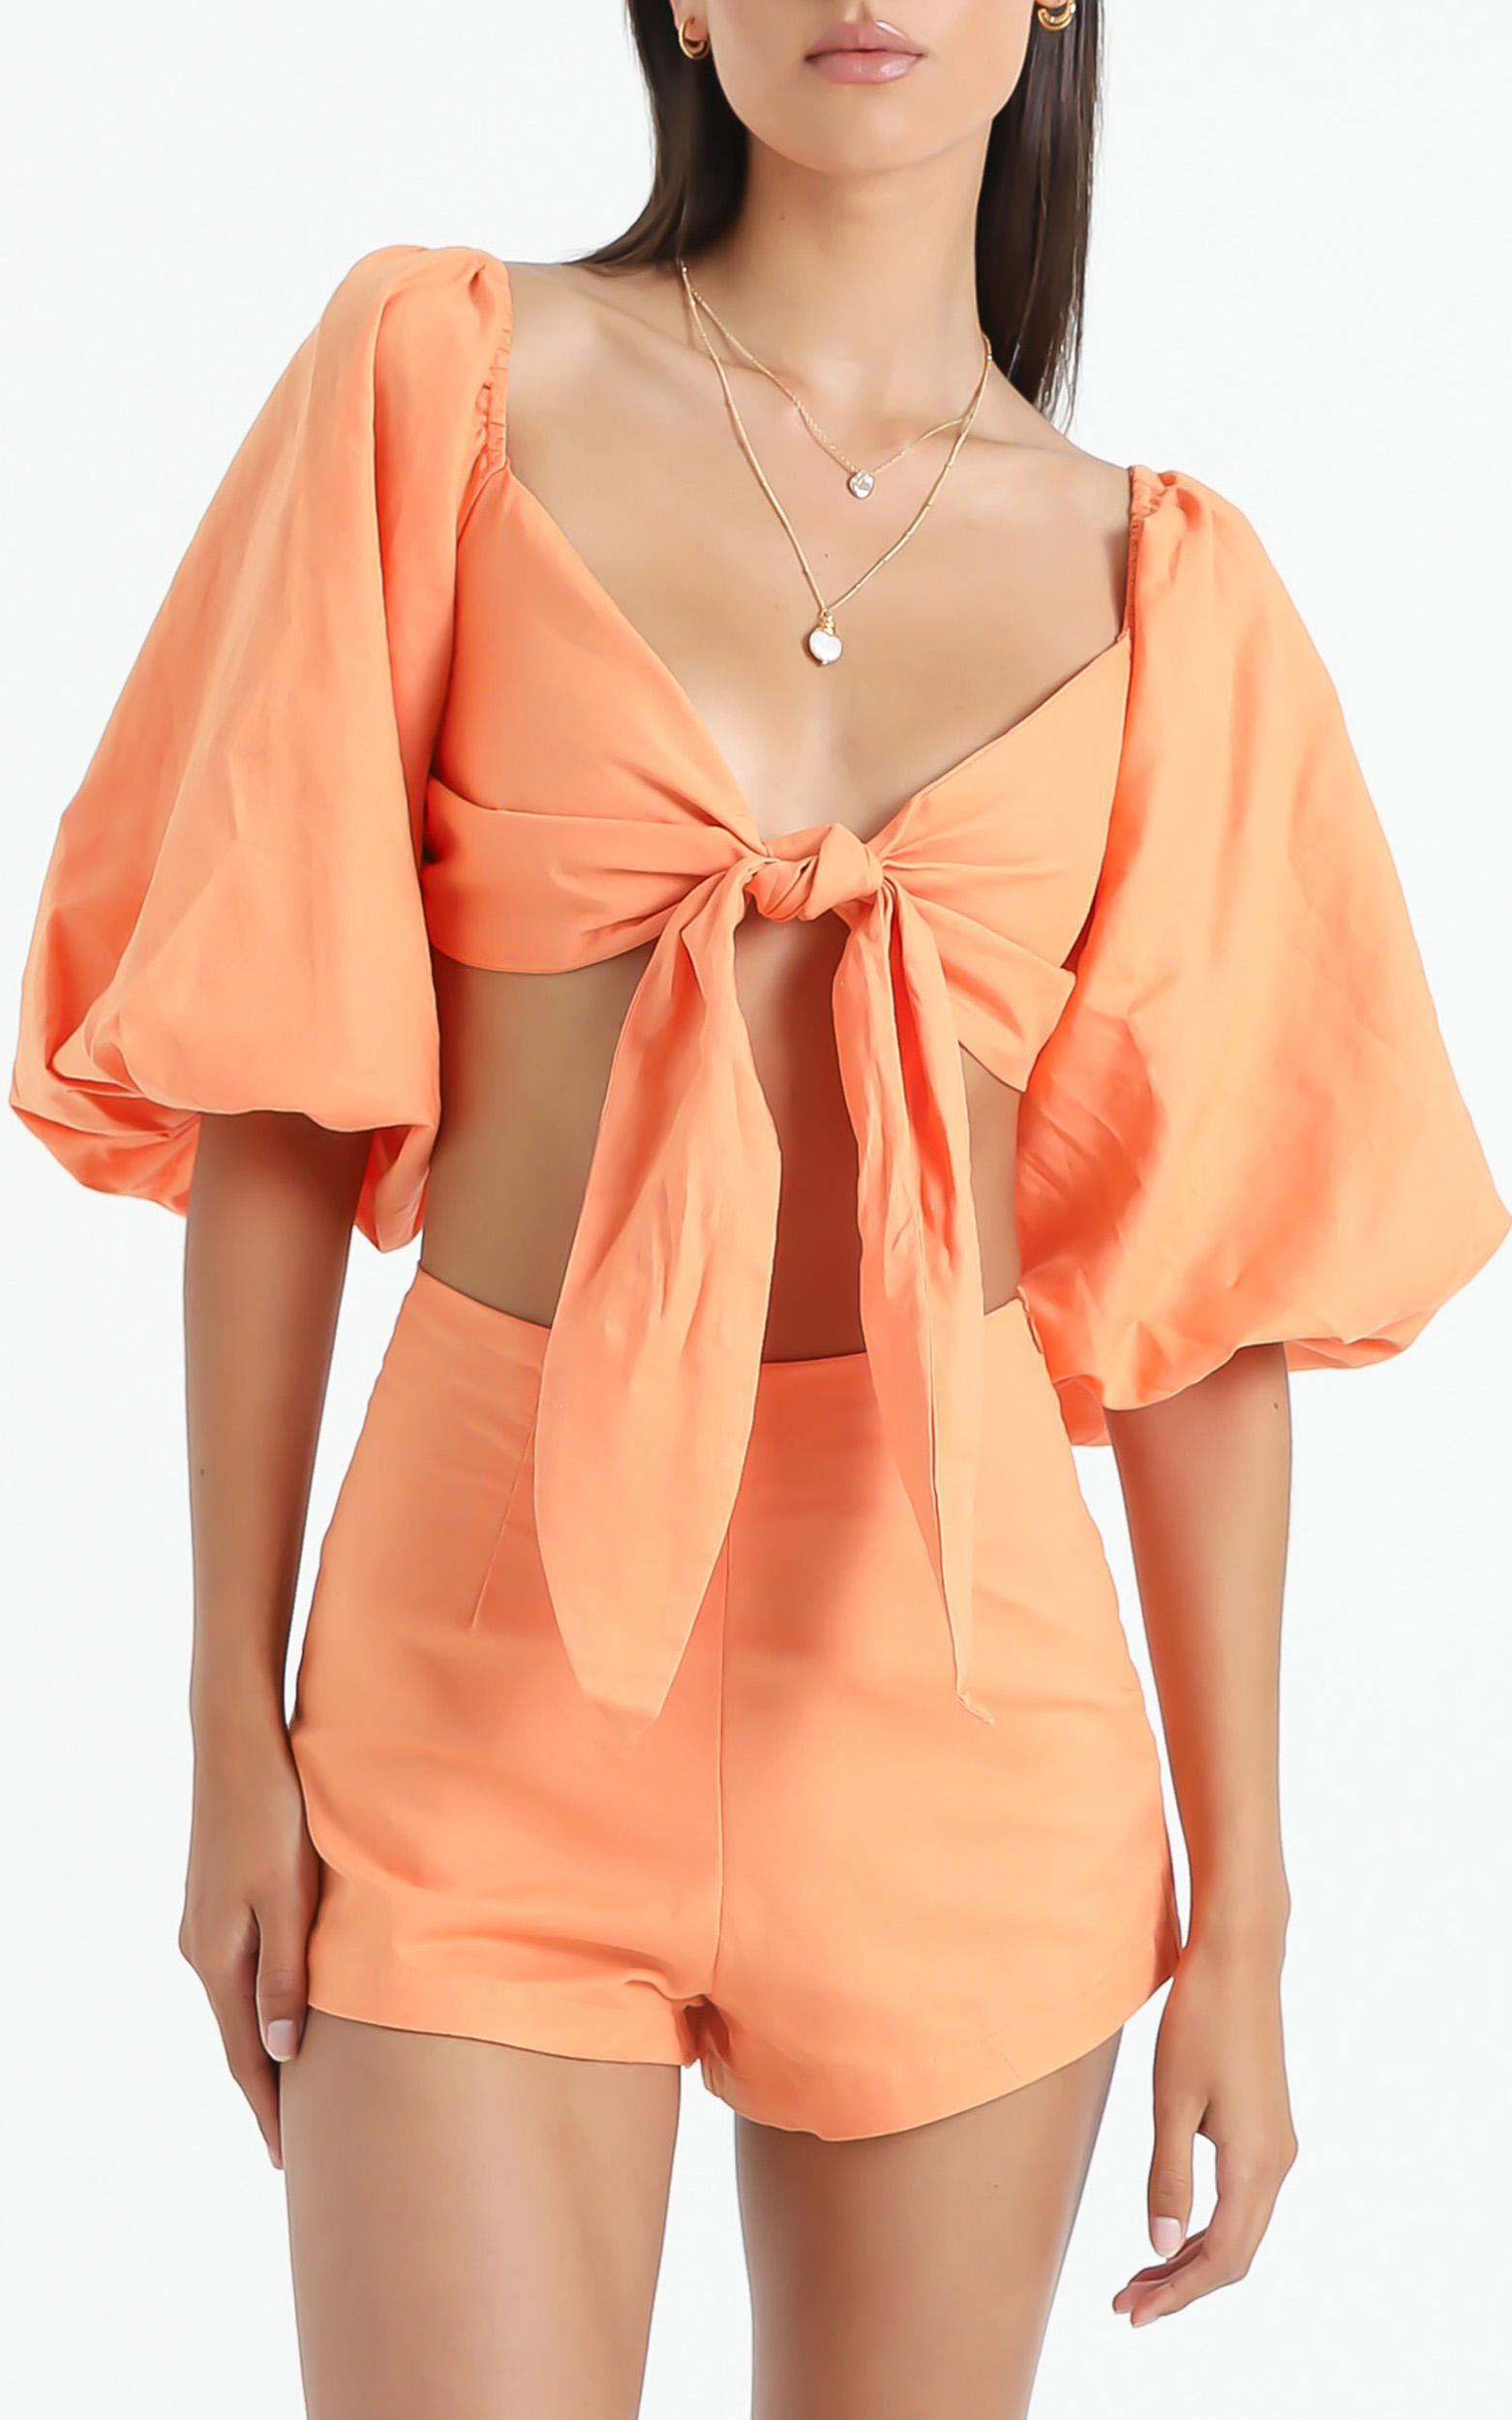 Charlie Holiday - Sonny Top in Papaya - XS, Orange, hi-res image number null